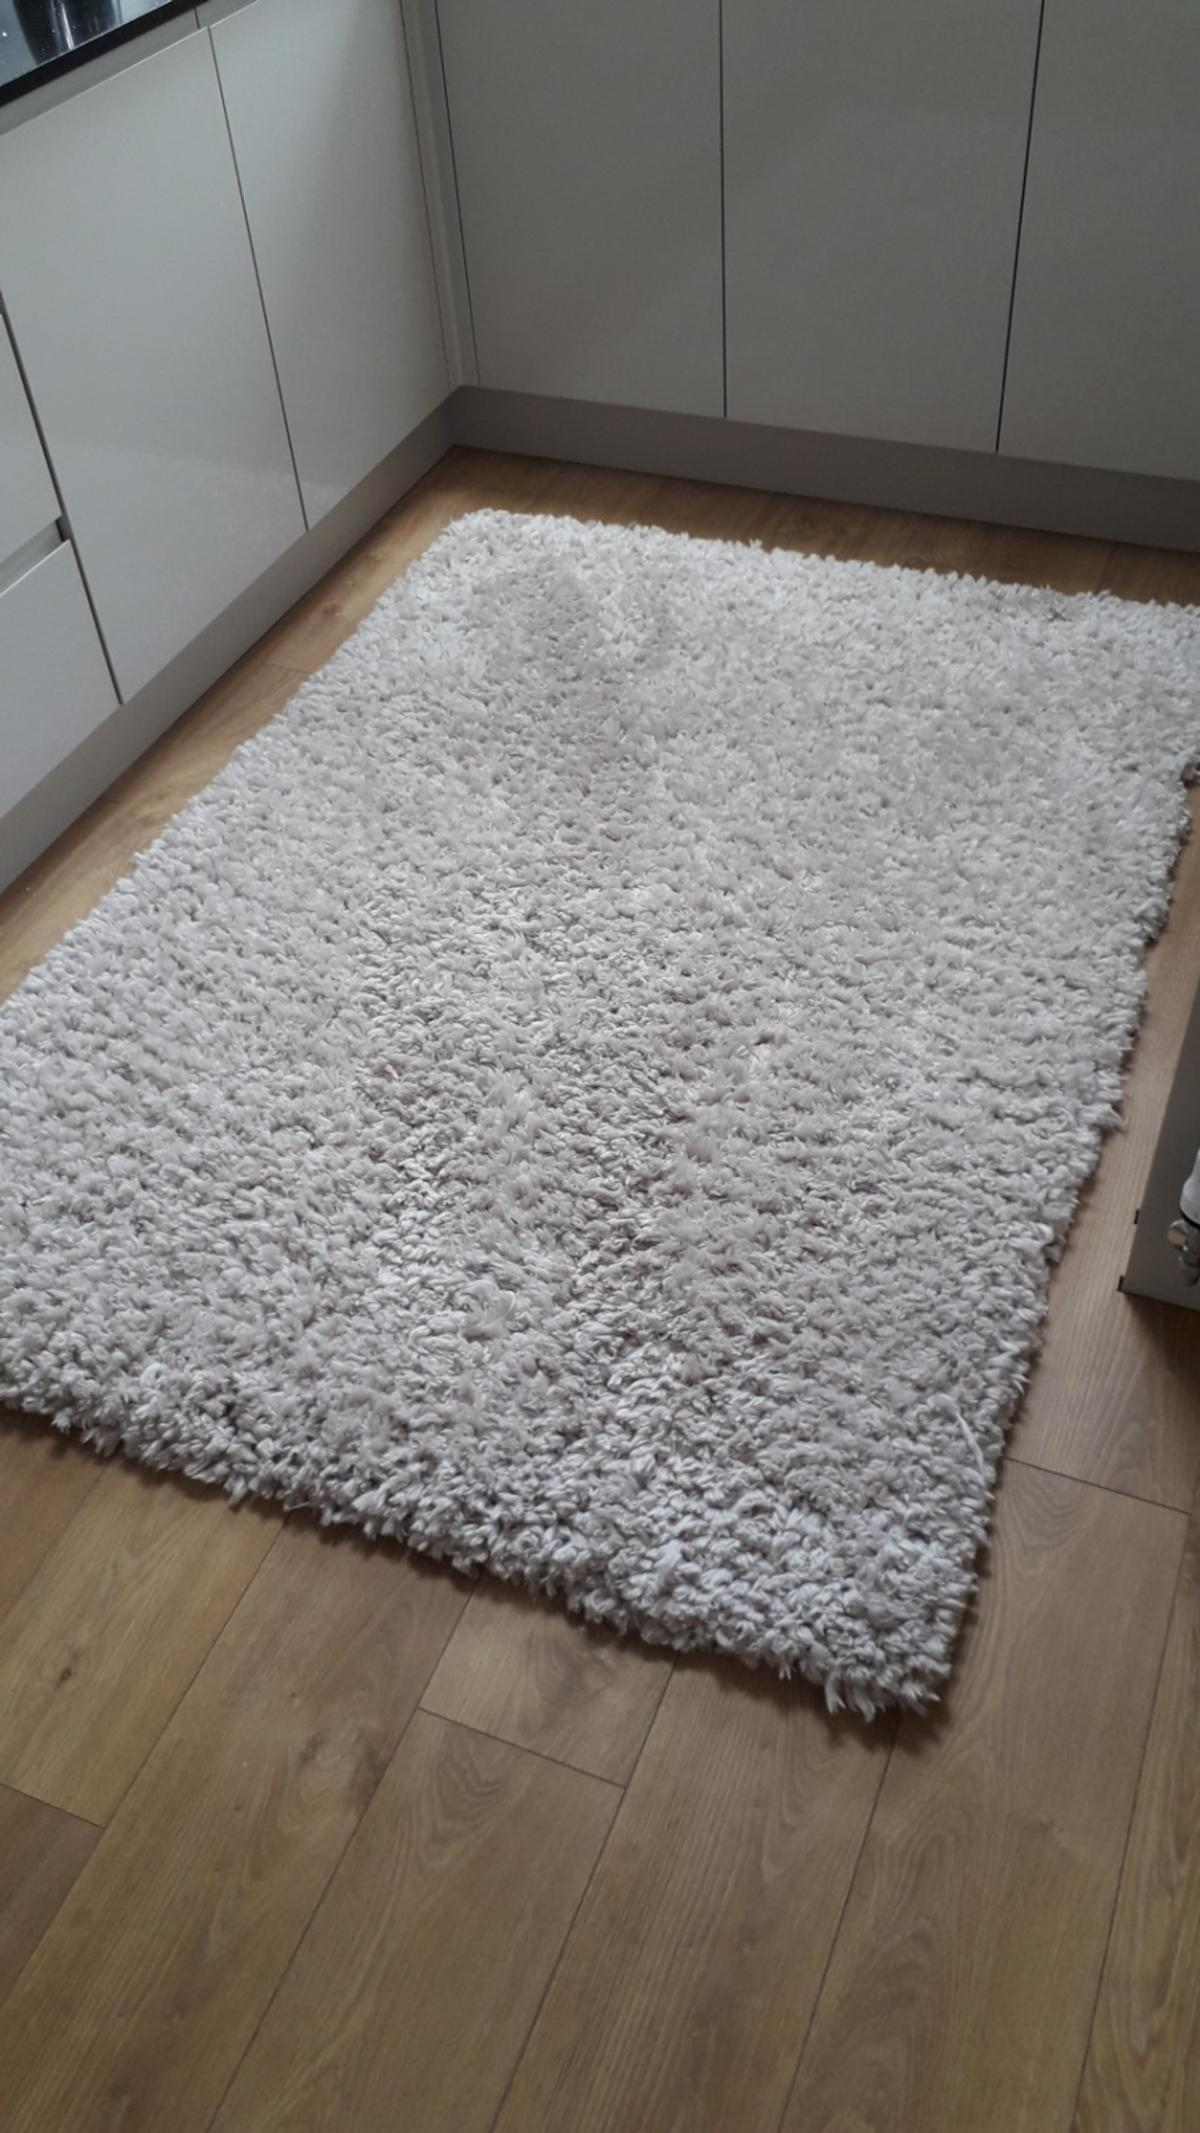 Large Rug From Dunelm Mill Shaggy In Sk15 Tameside For 30 00 For Sale Shpock